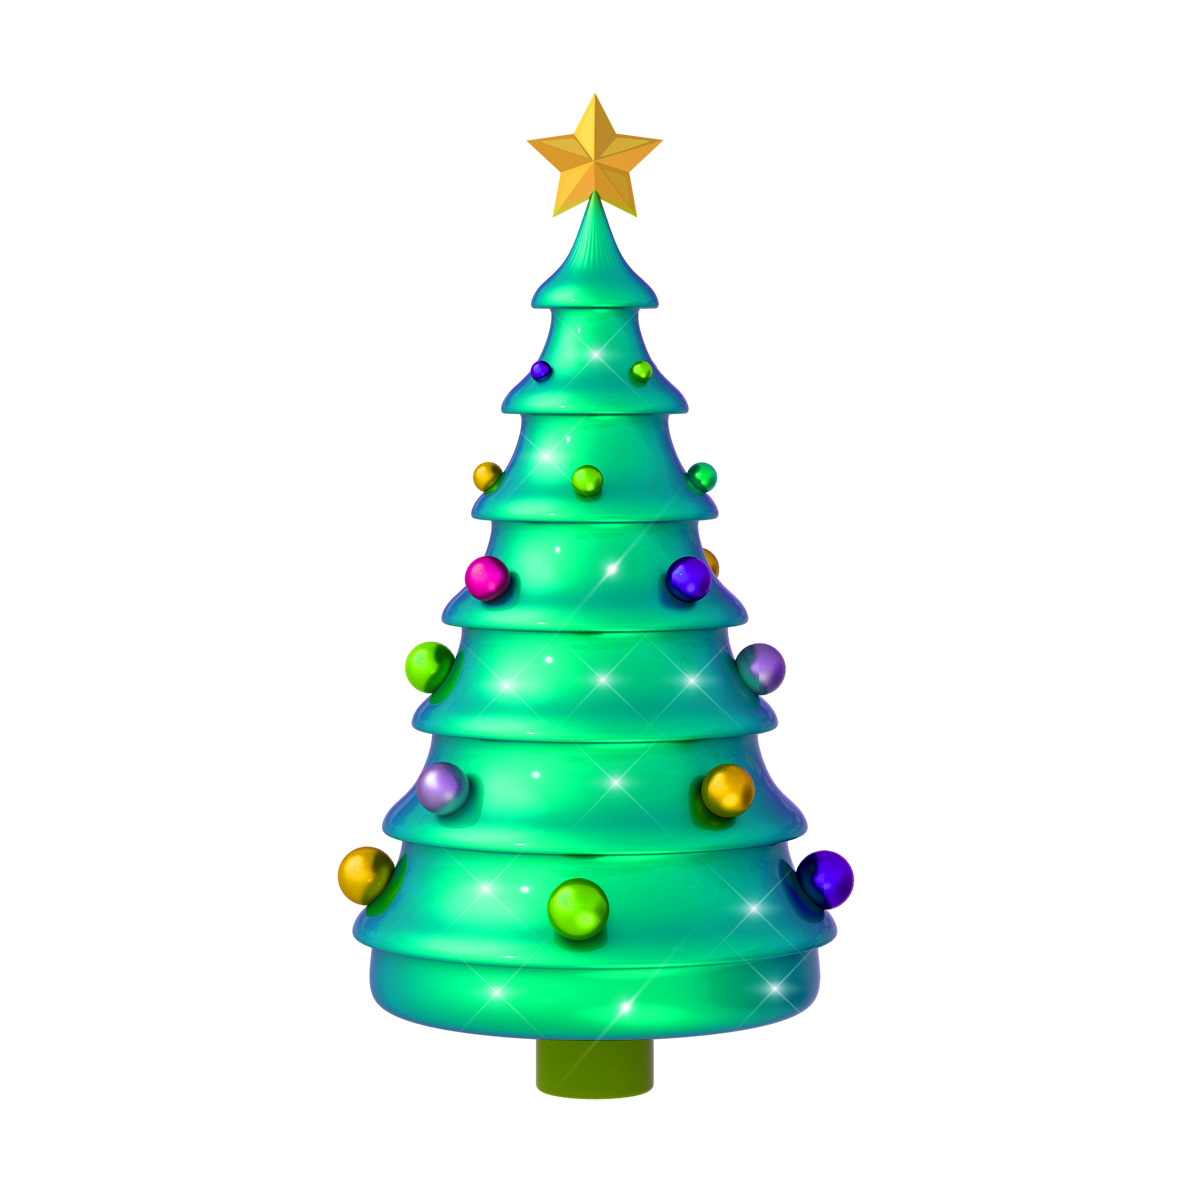 Free Download Shining Christmas Tree Png Transparent Background Image It Can Be Used In Making White Christmas Tree Clipart Background Images Christmas Vectors